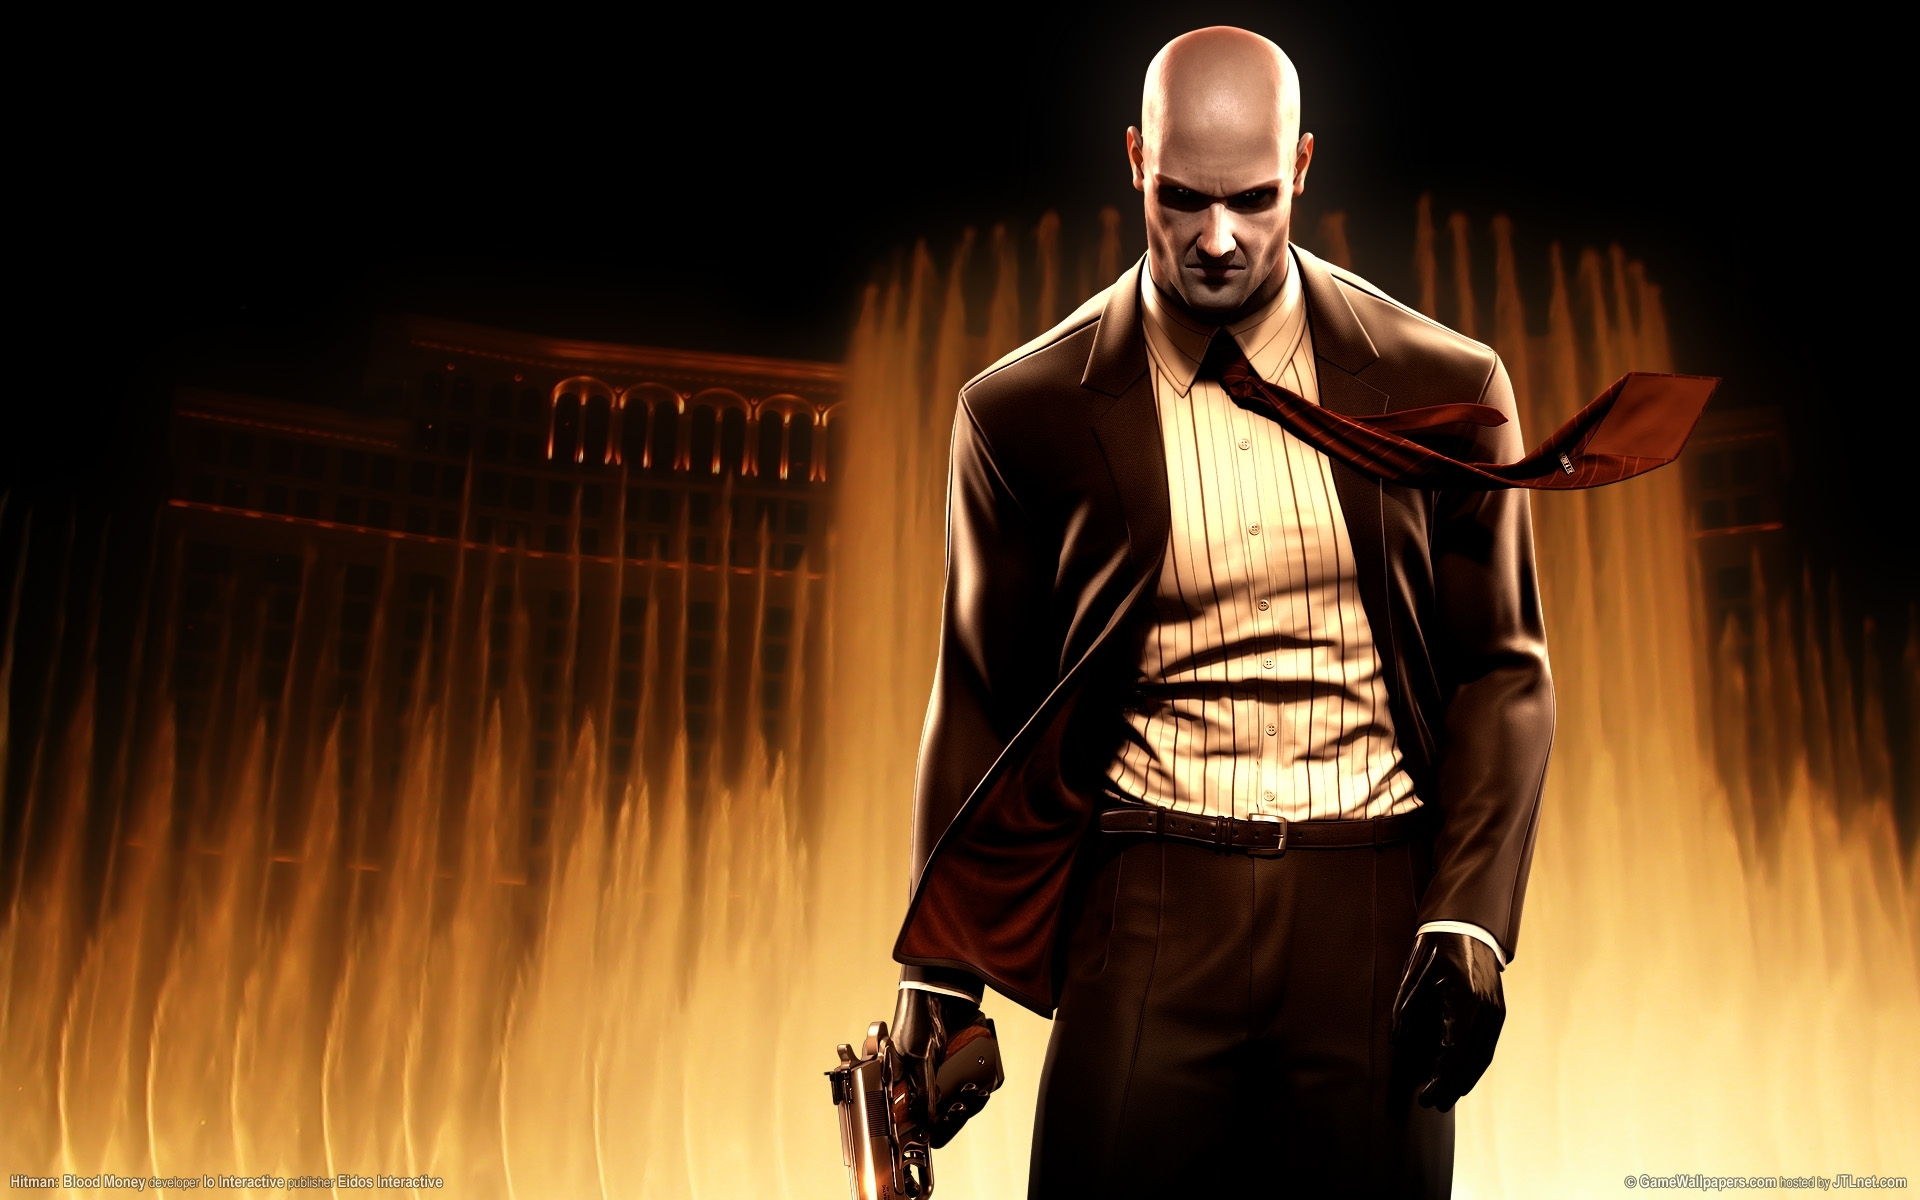 wallpaper hitman blood money 08 1920x1200 - 10 000 fonds d'écran hd